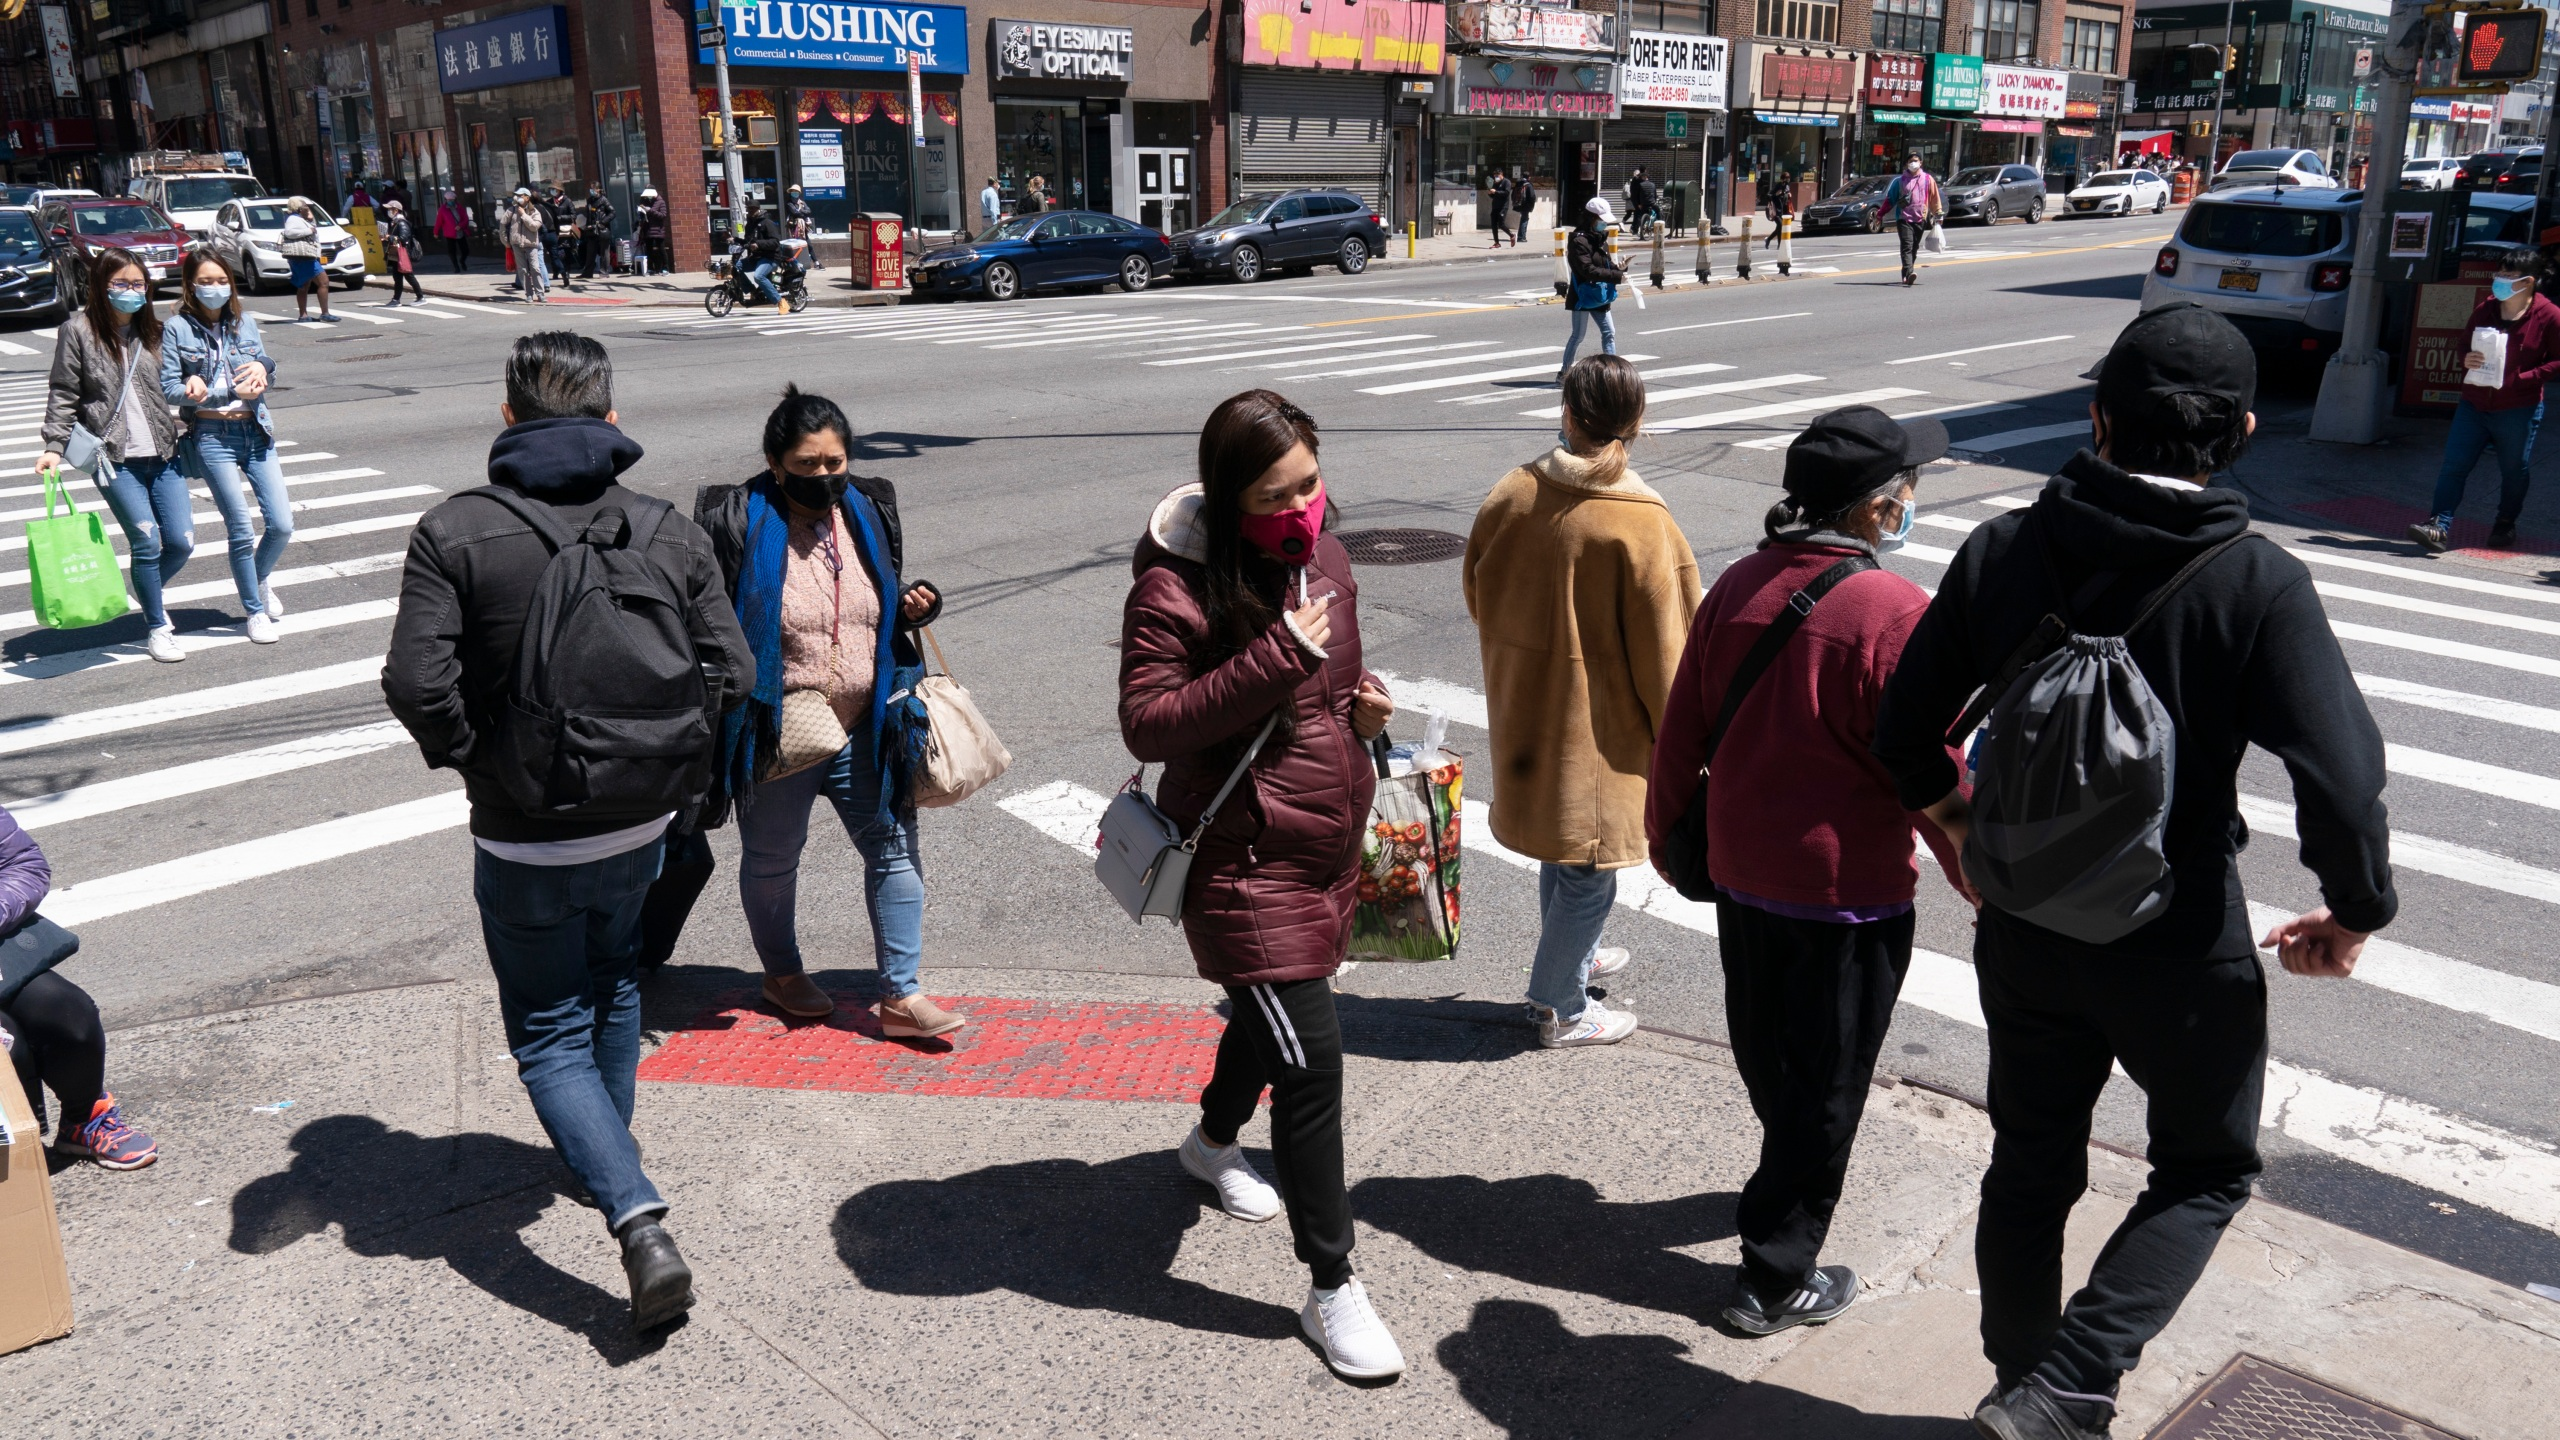 People walk on the street on April 26, 2021, in New York. (Mark Lennihan / Associated Press)